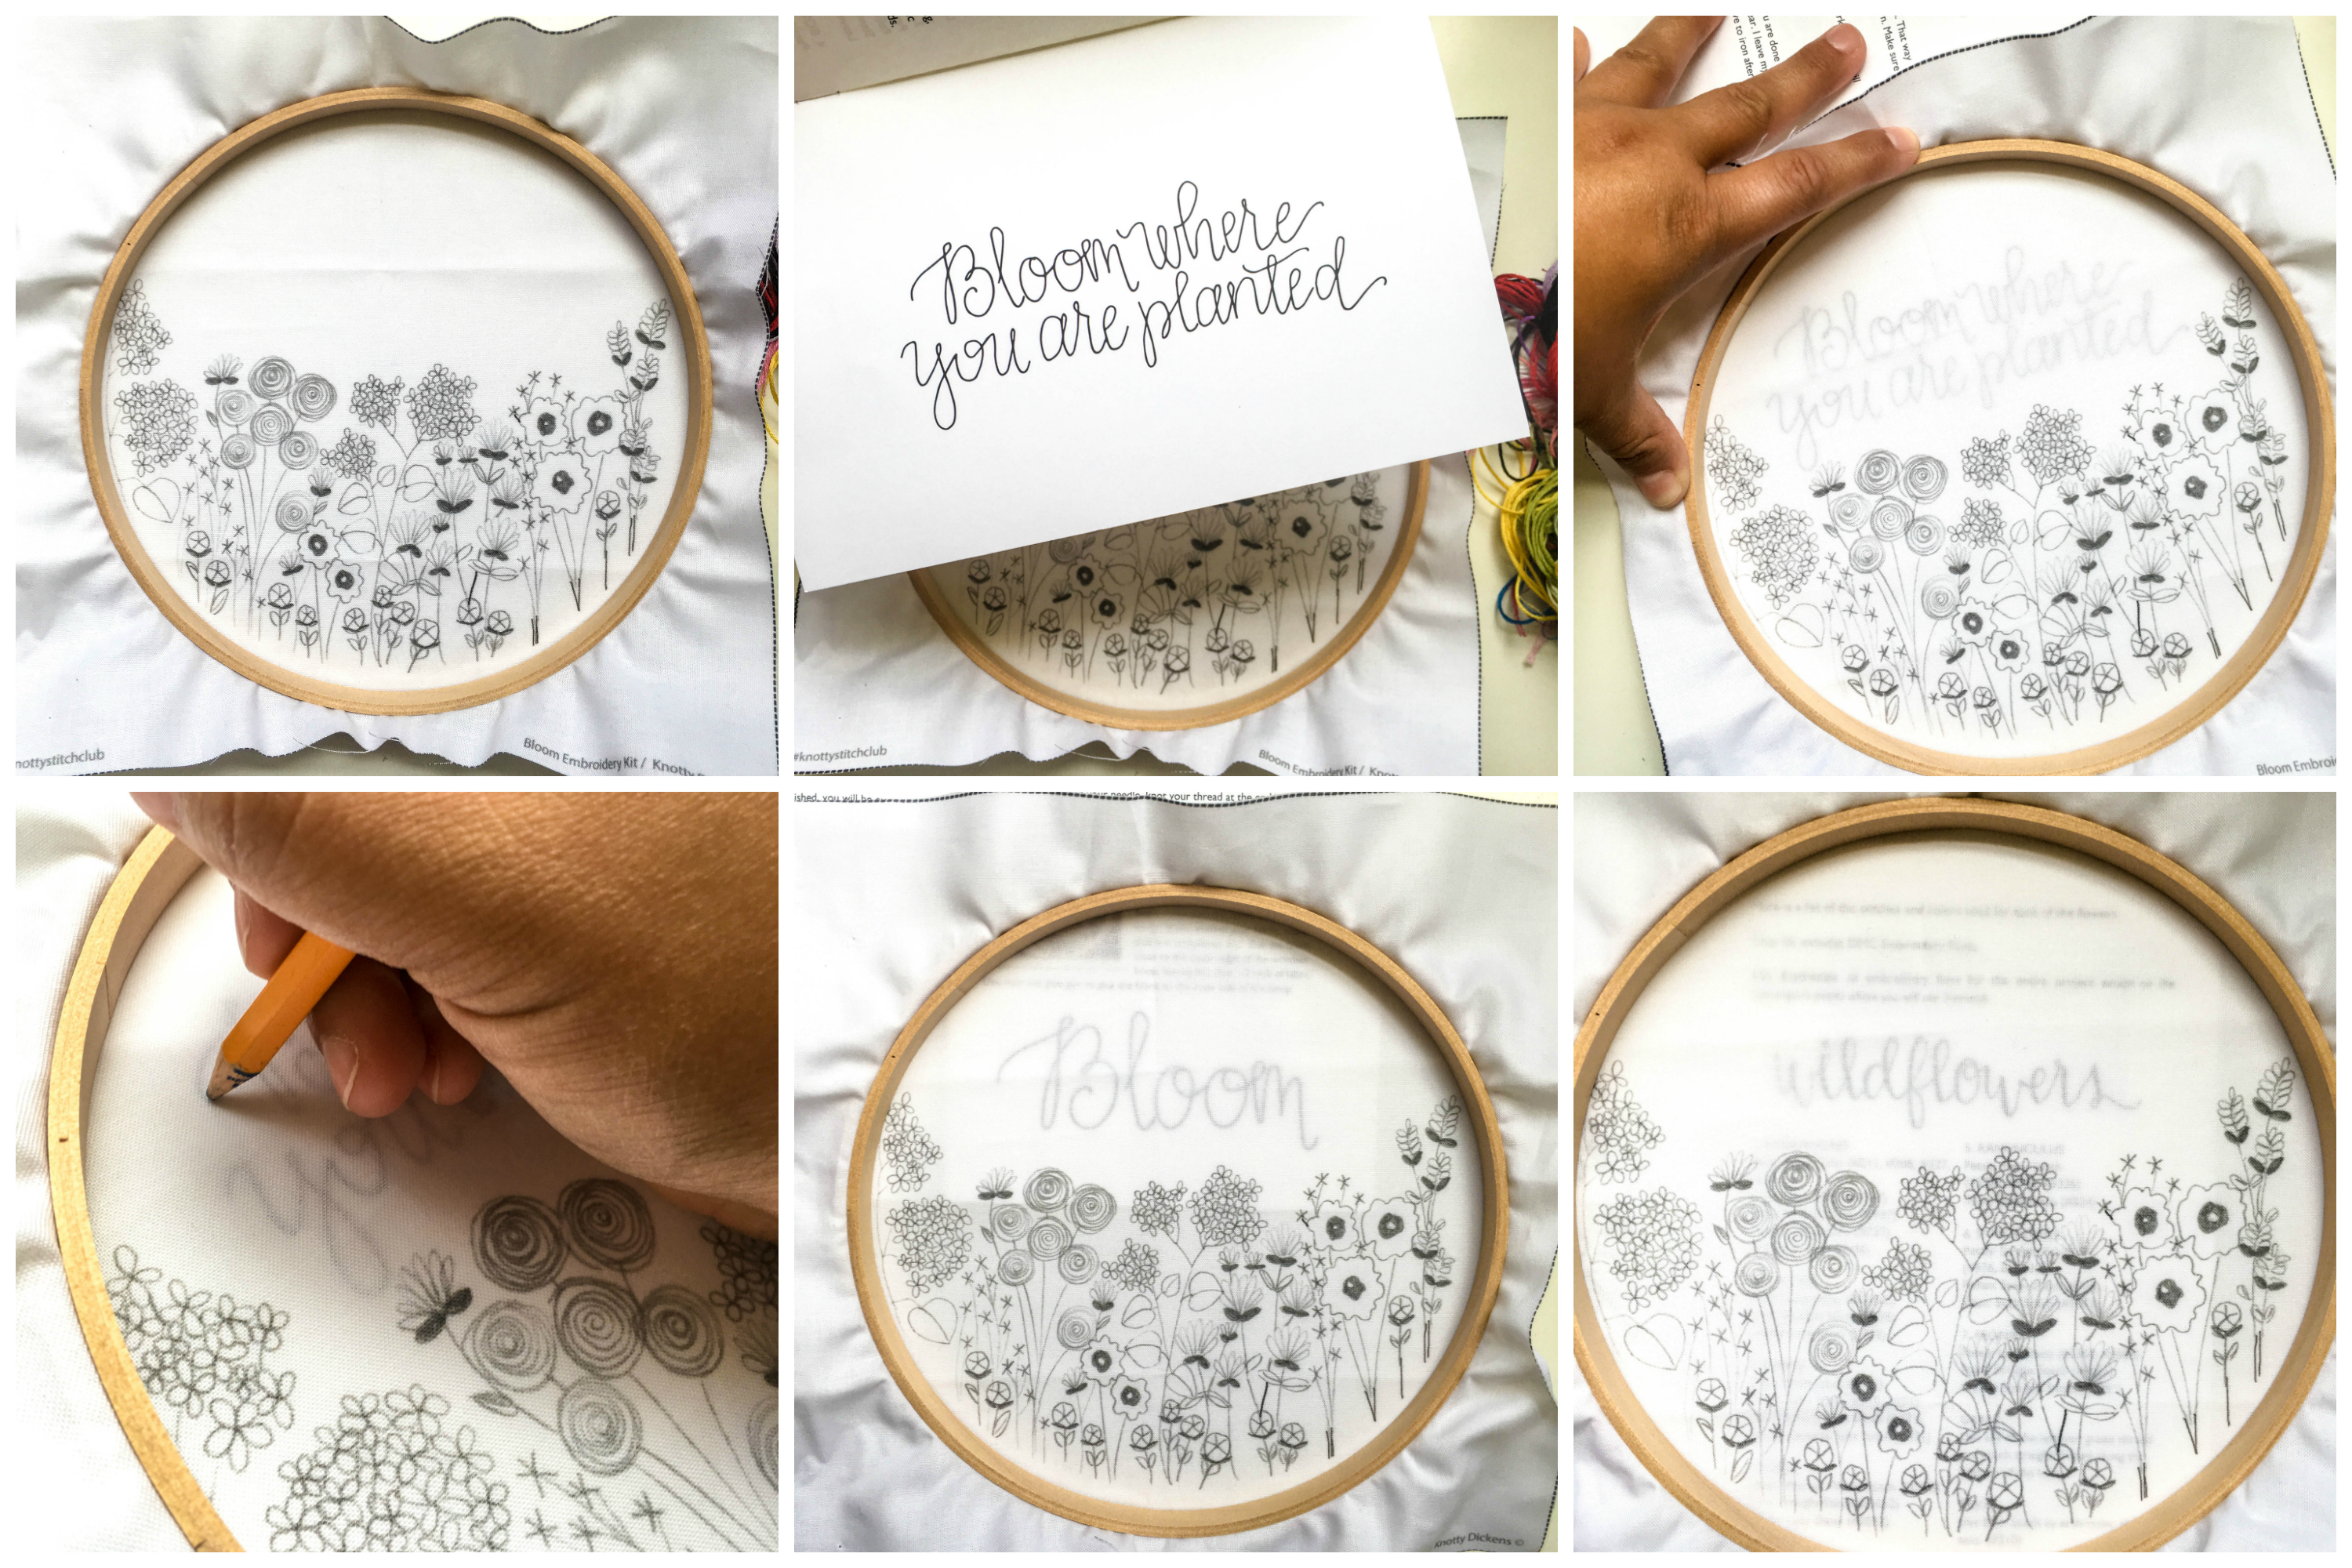 Transfer Pattern to Fabric Tutorial with Pencil Hand Embroidery